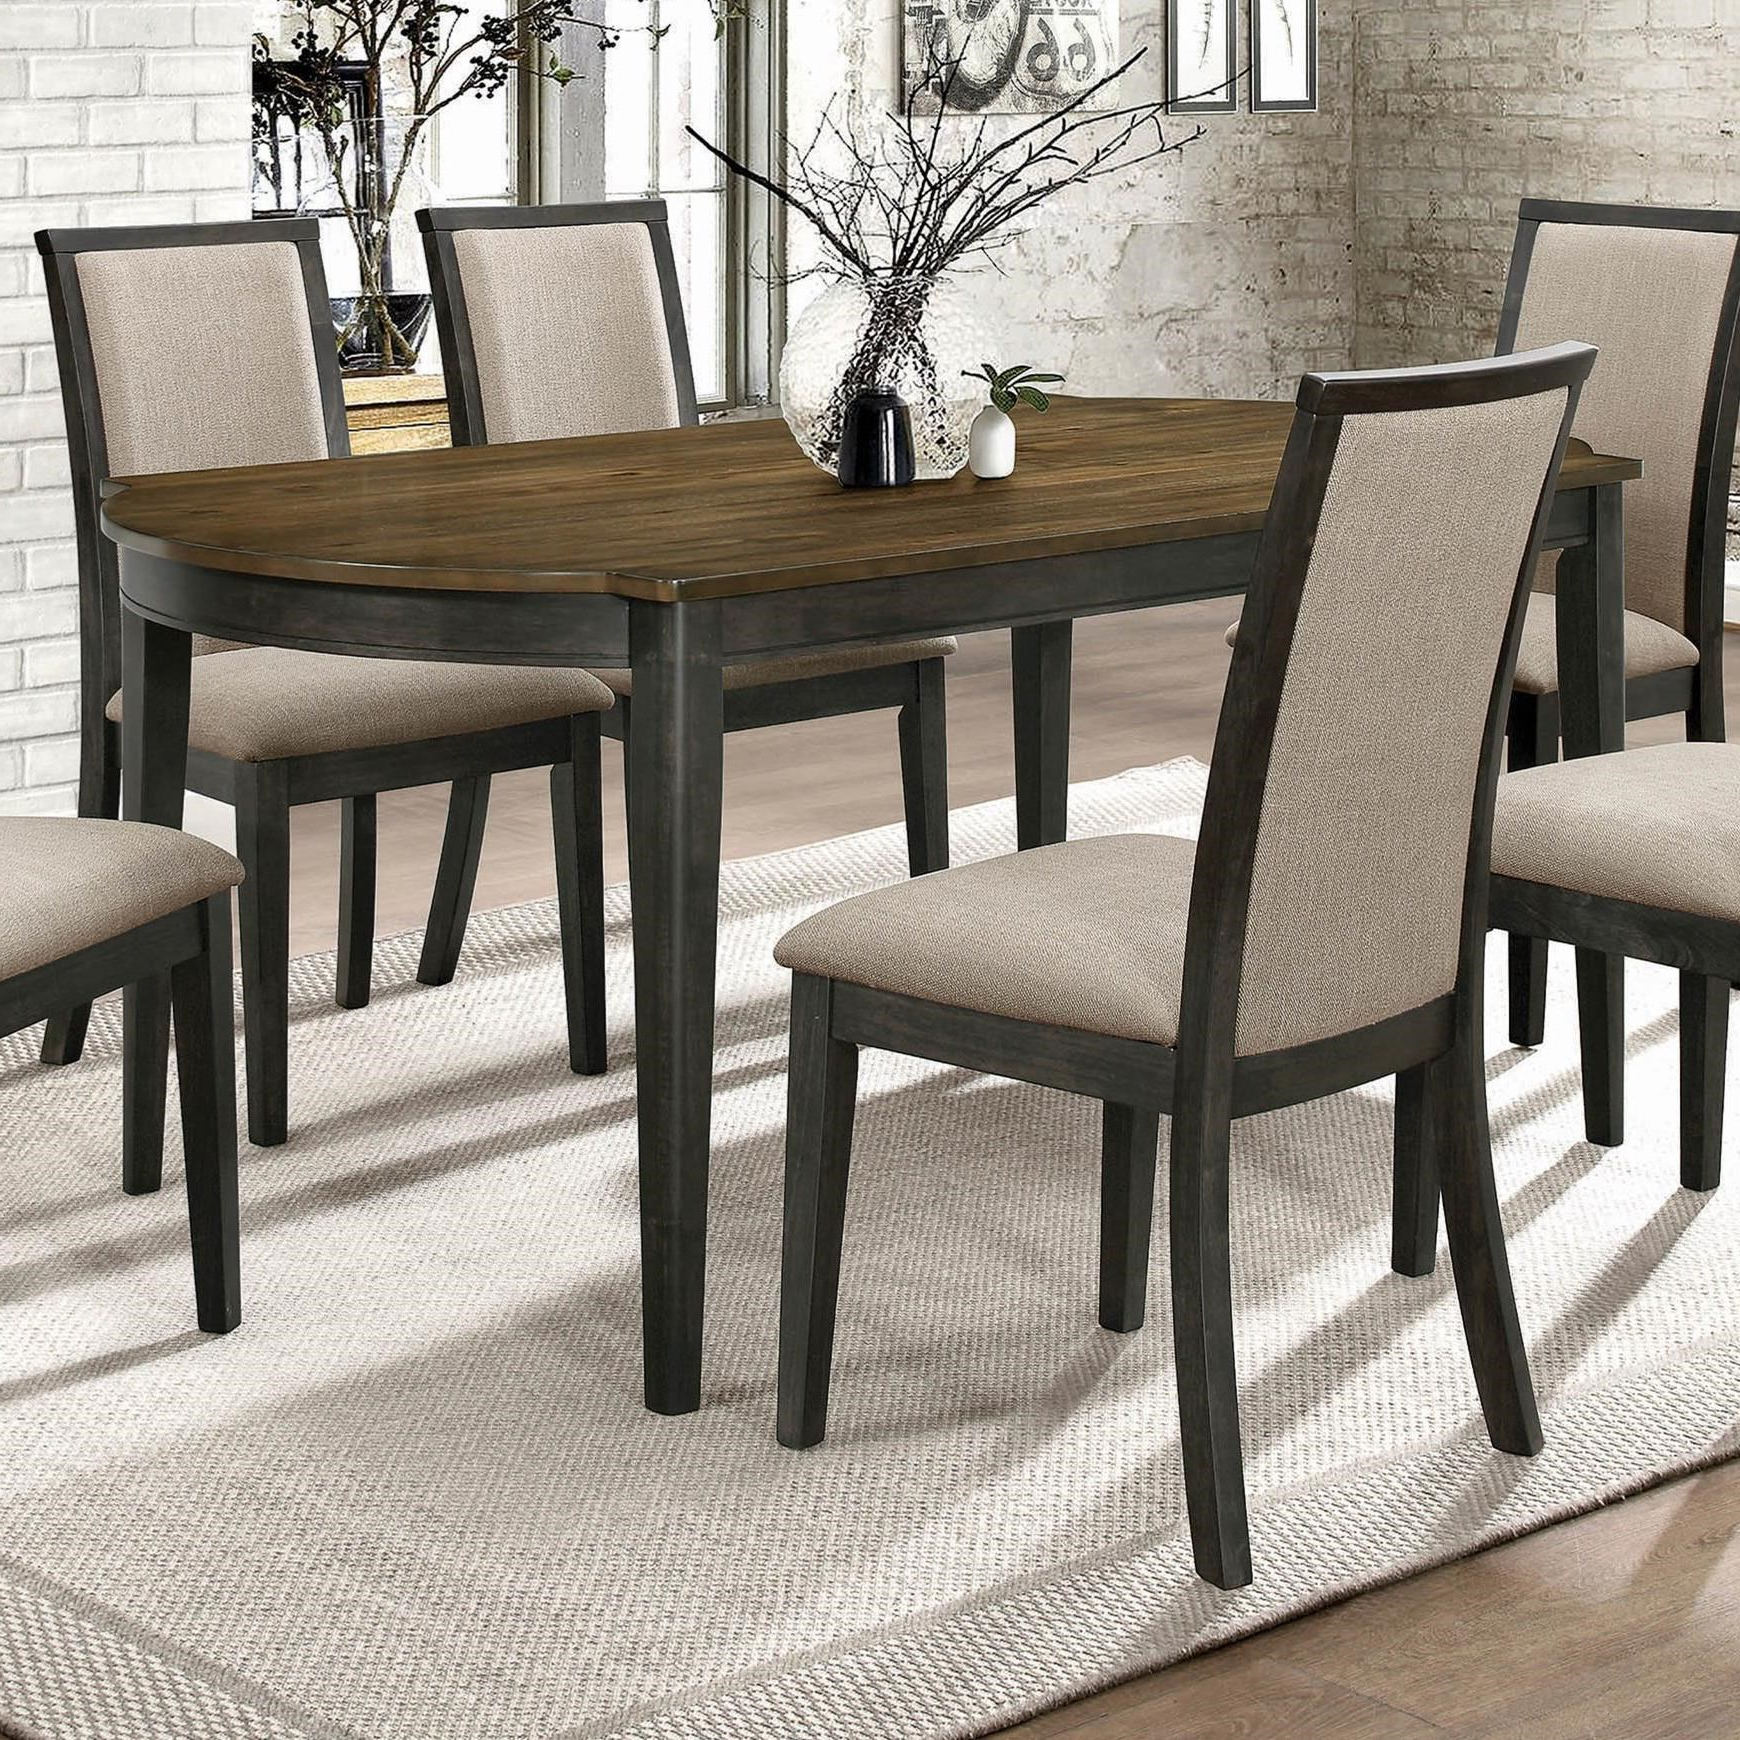 Trendy Charcoal Transitional 6 Seating Rectangular Dining Tables For Coaster Clarksville Transitional Dining Table With 2 Tone (View 23 of 25)